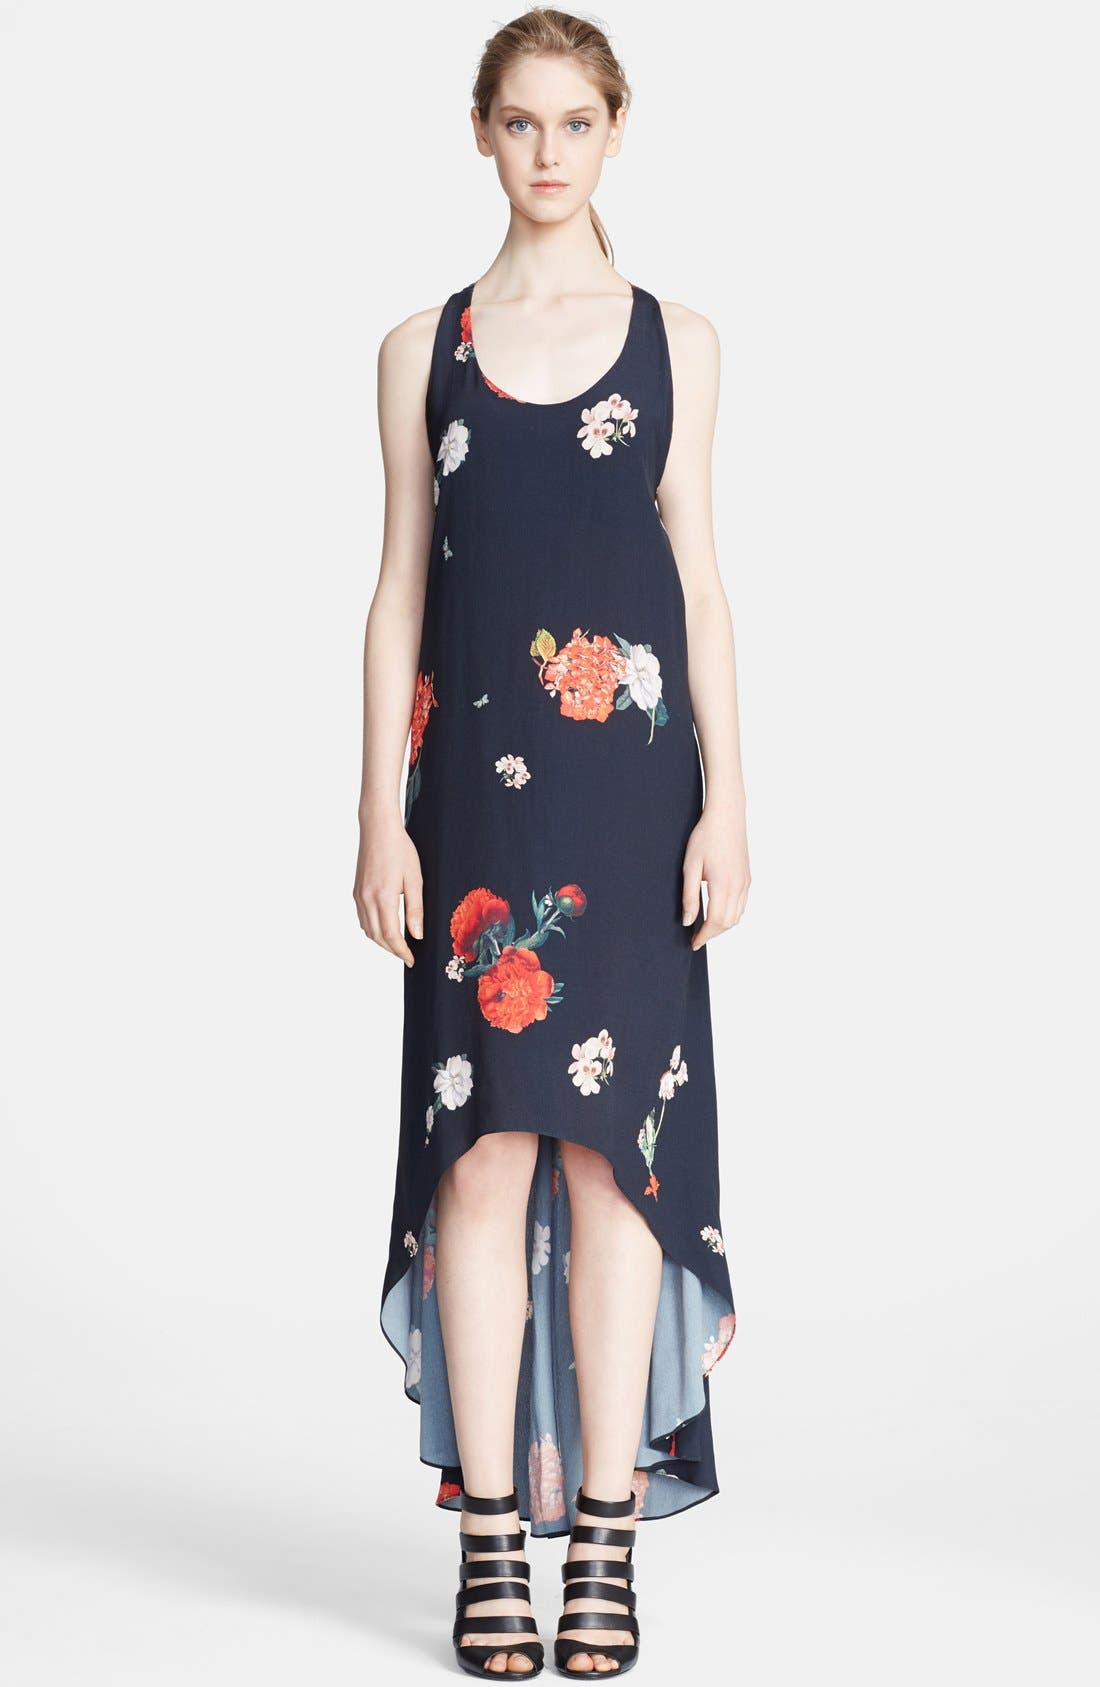 Main Image - Alice + Olivia 'Veronica' Floral Print High/Low Dress